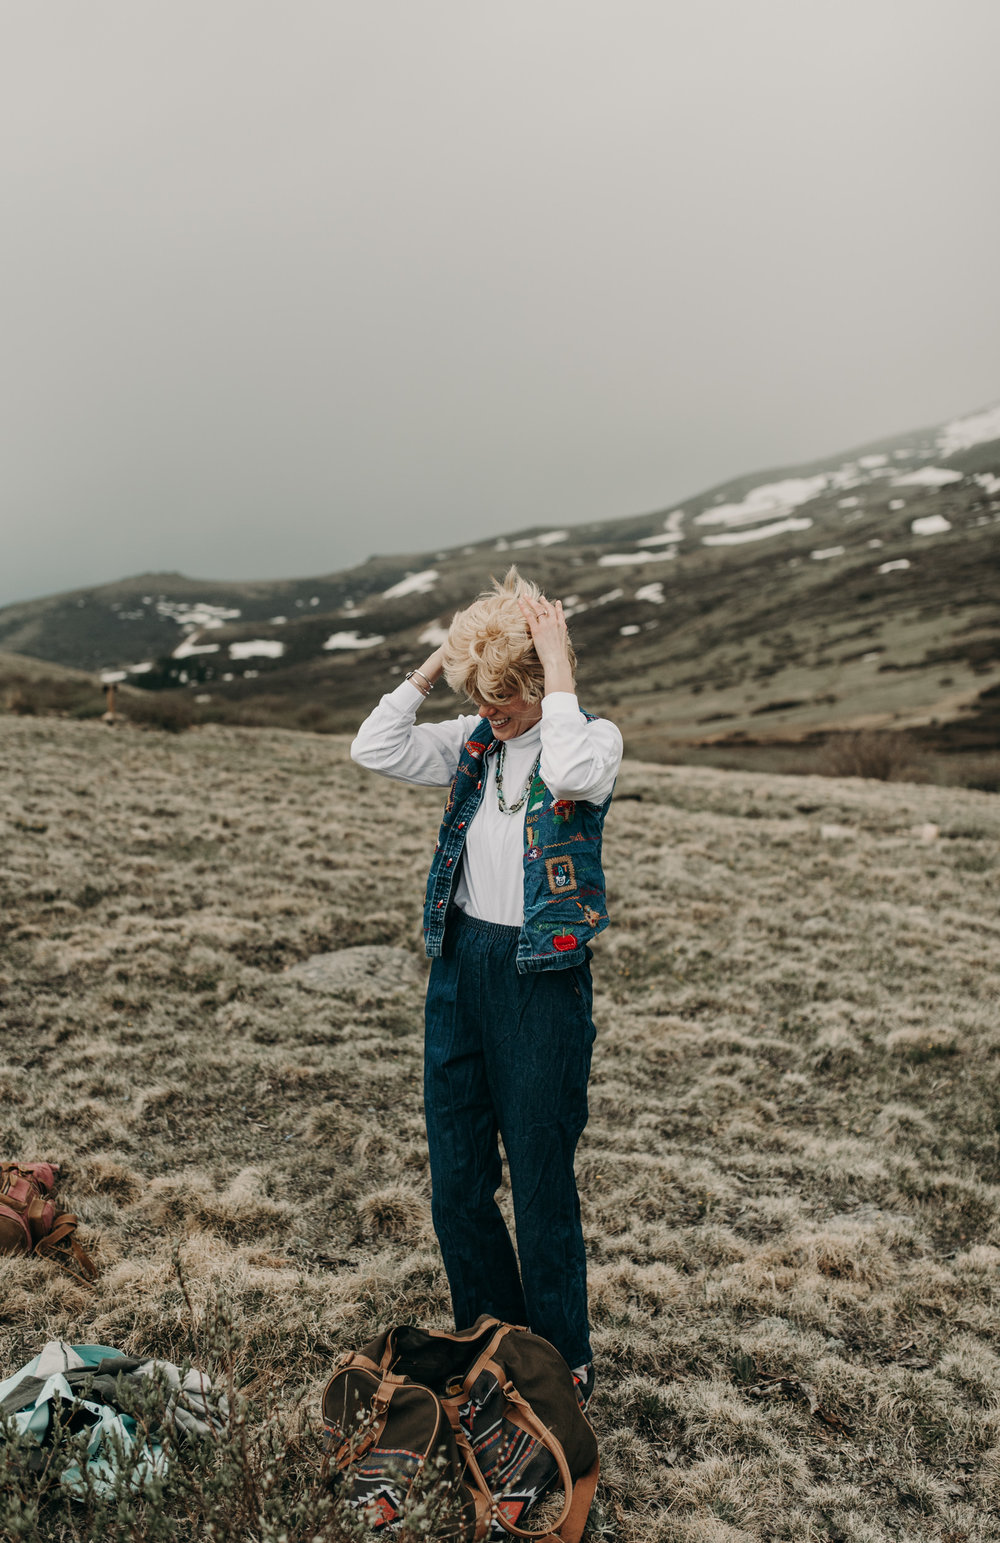 Elopement photographer based in Georgetown, Colorado